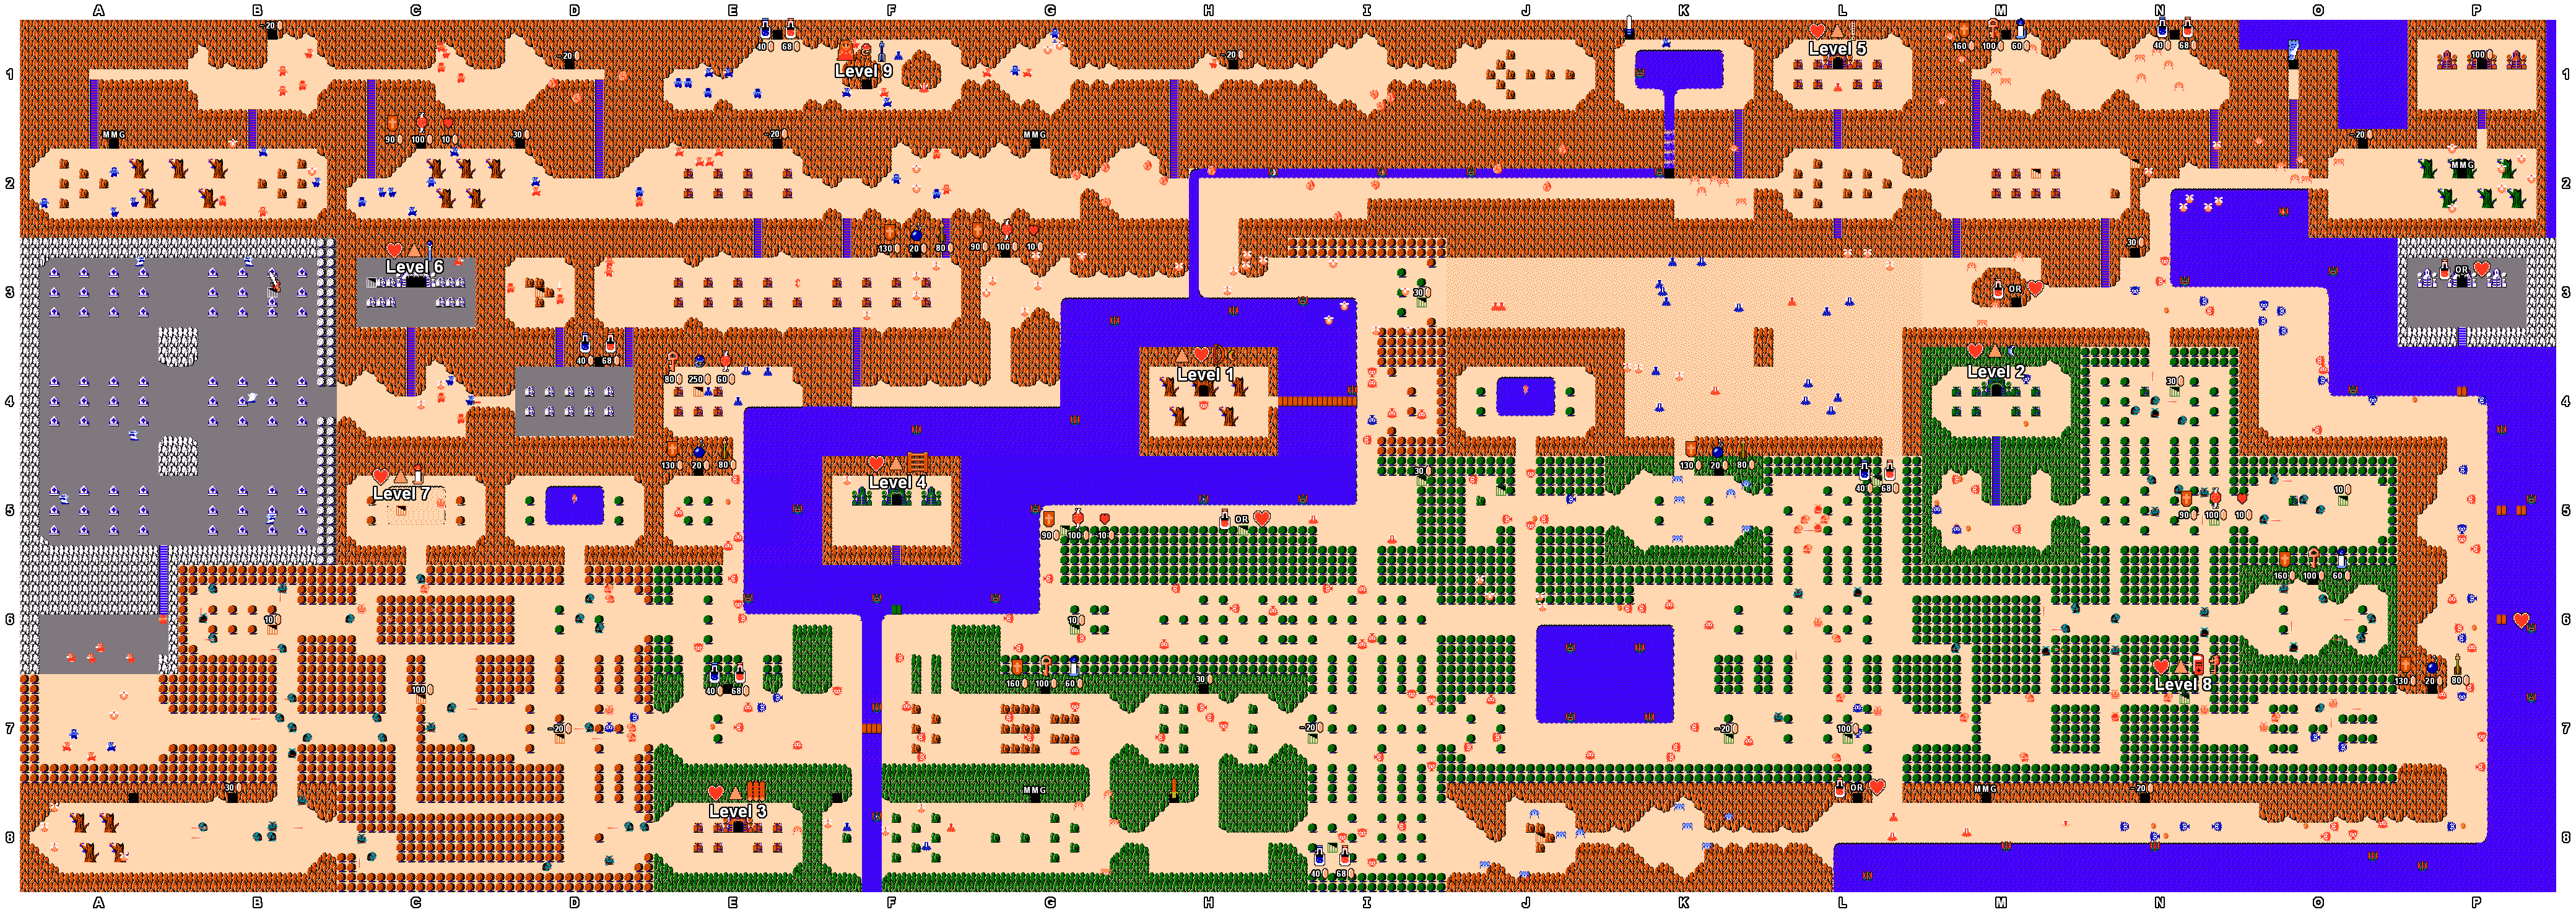 Mike's RPG Center - The Legend of Zelda